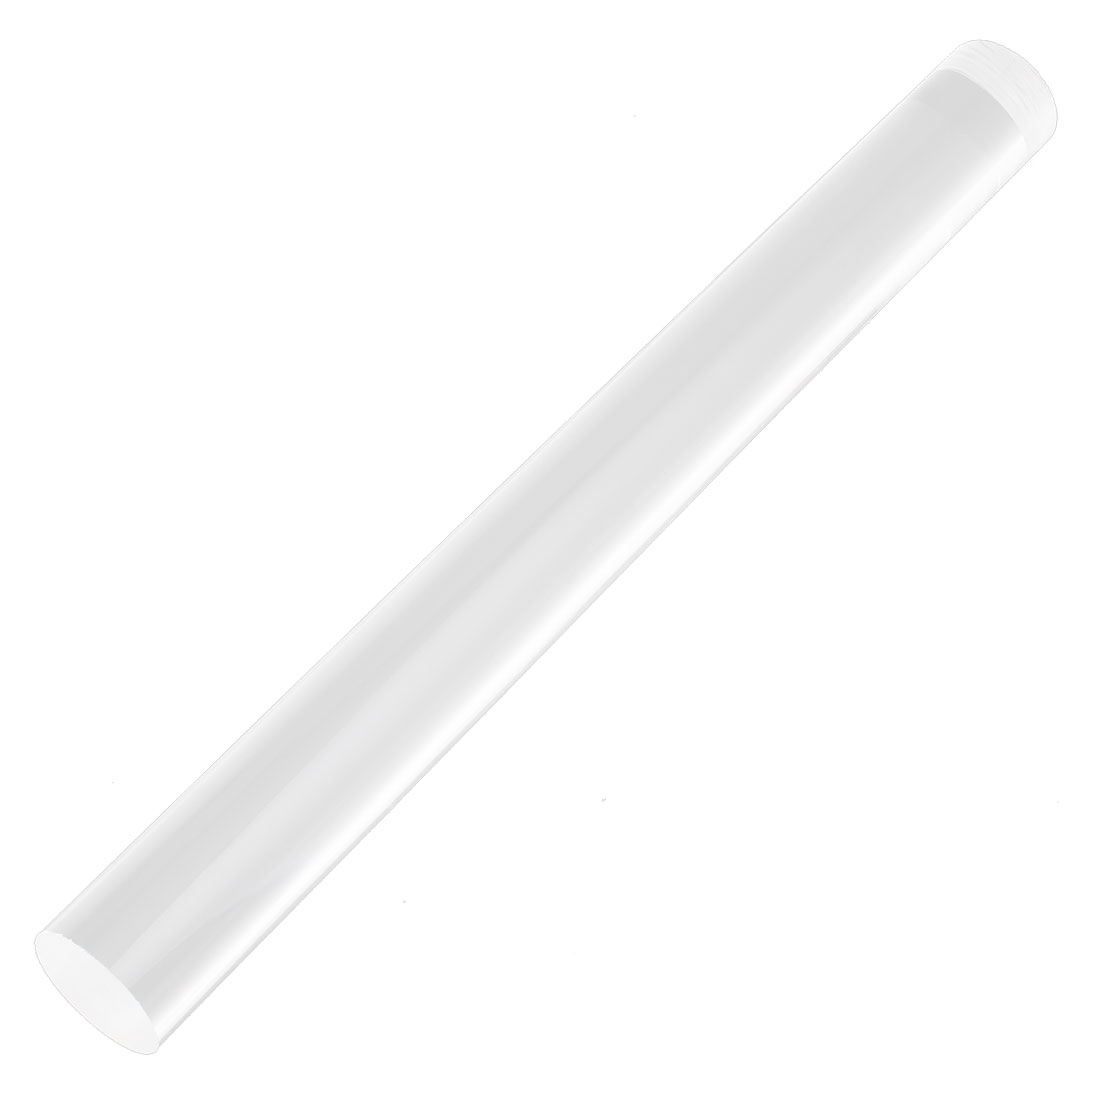 30mm Diameter Clear Round Acrylic Rod PMMA Circular Bar 300mm Length